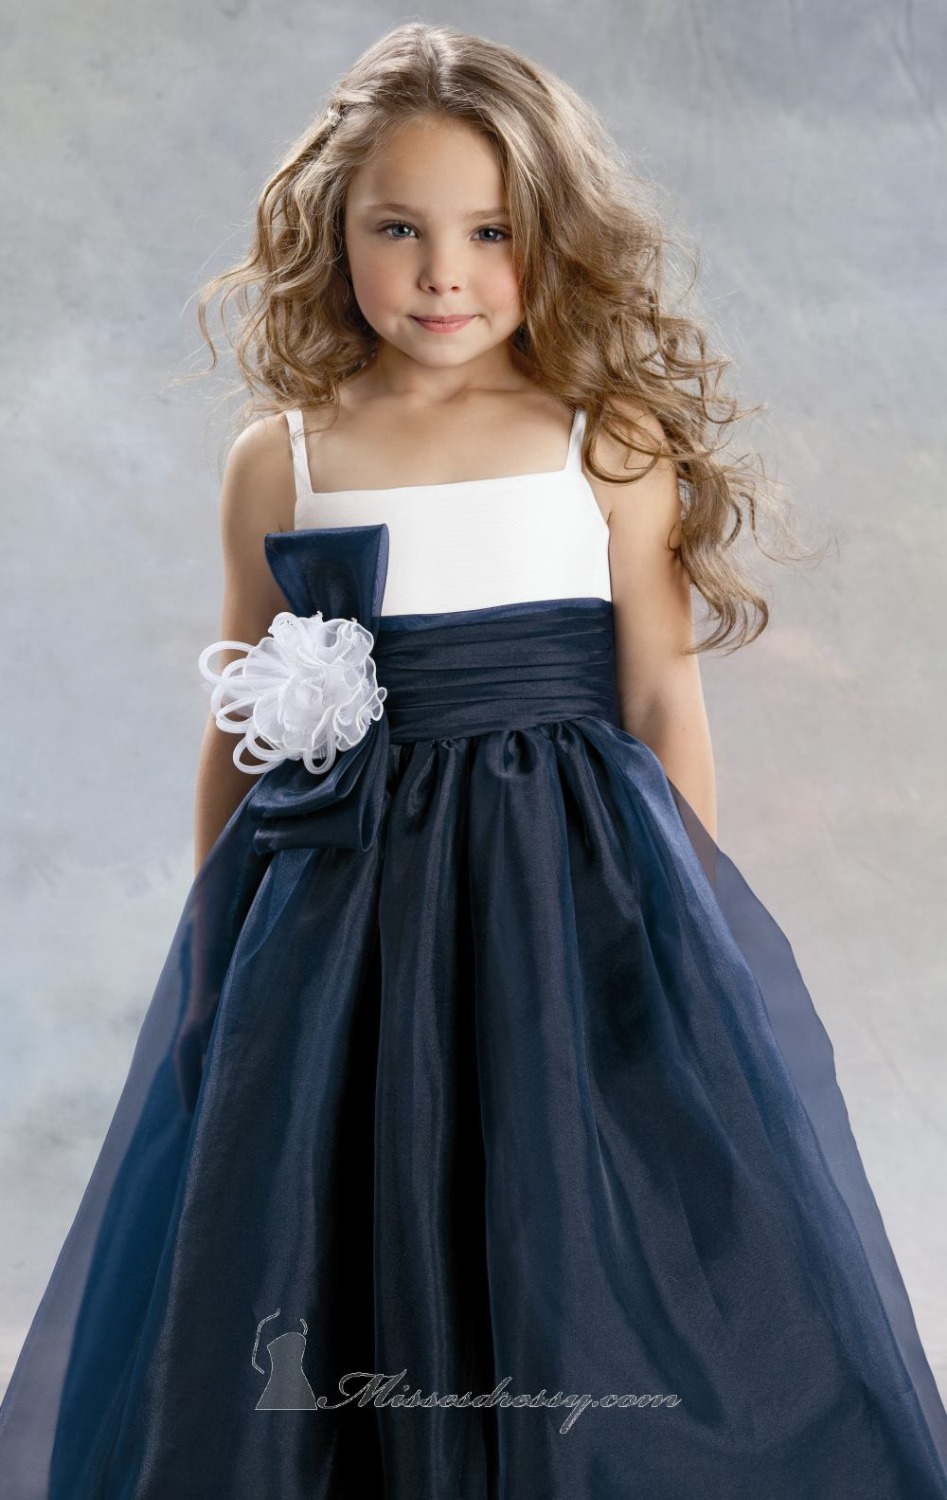 Pretty A Line Flowers Girl Dresses Navy Blue Bow White Flowers Junior  Bridesmaid Gown Organza Baby Little Girls LD1637-in Flower Girl Dresses  from Weddings ... b310489fc3fd